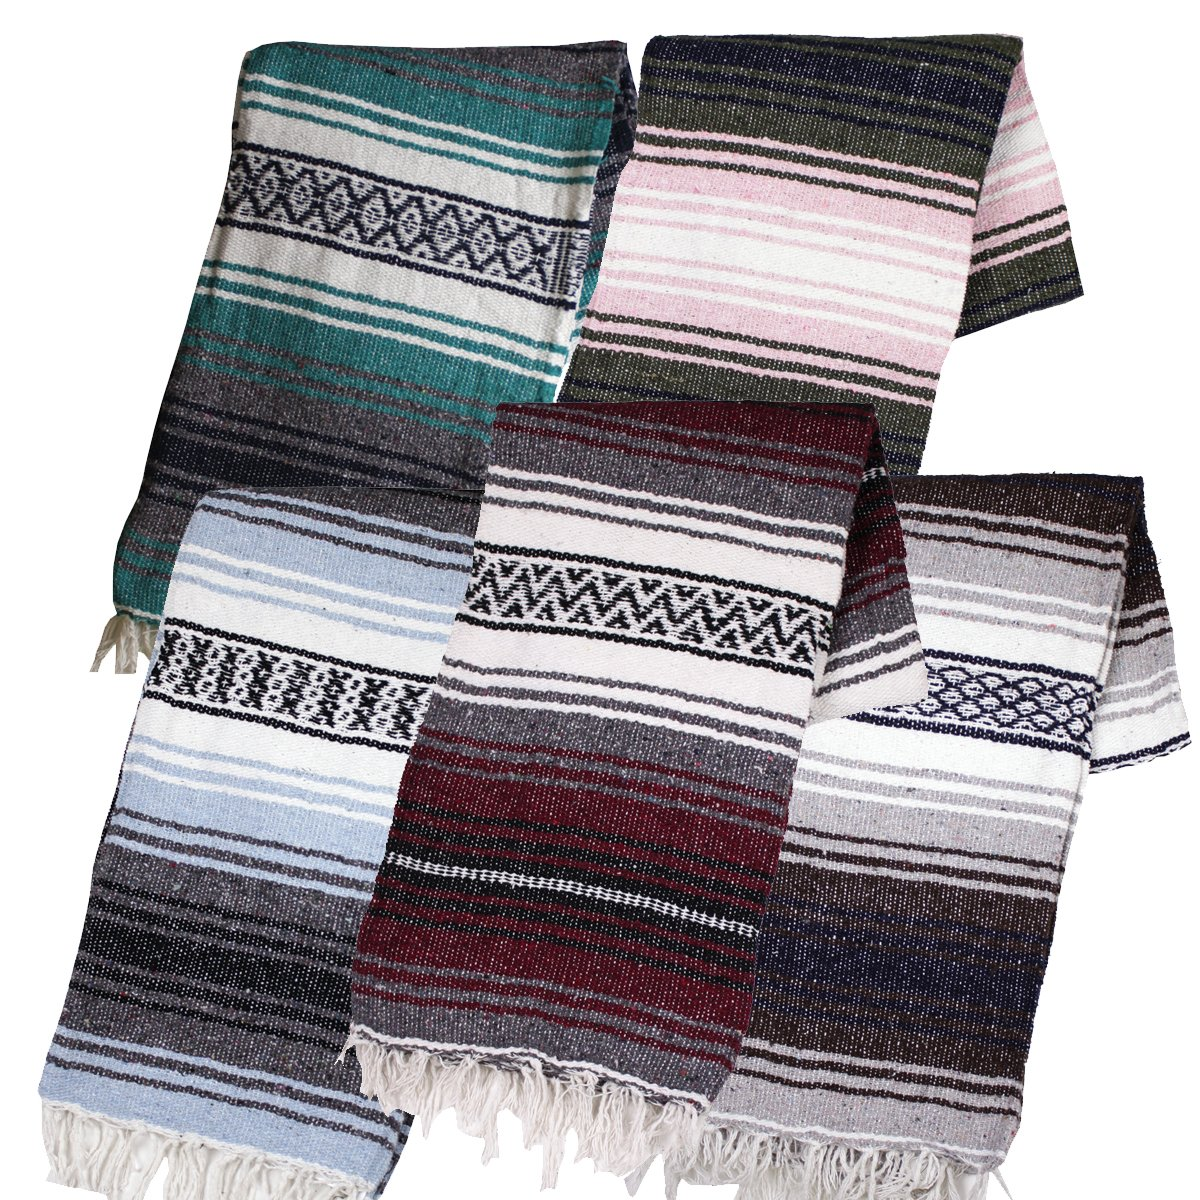 Yoga Blankets - Mexican BlanketsPurchase on Amazon